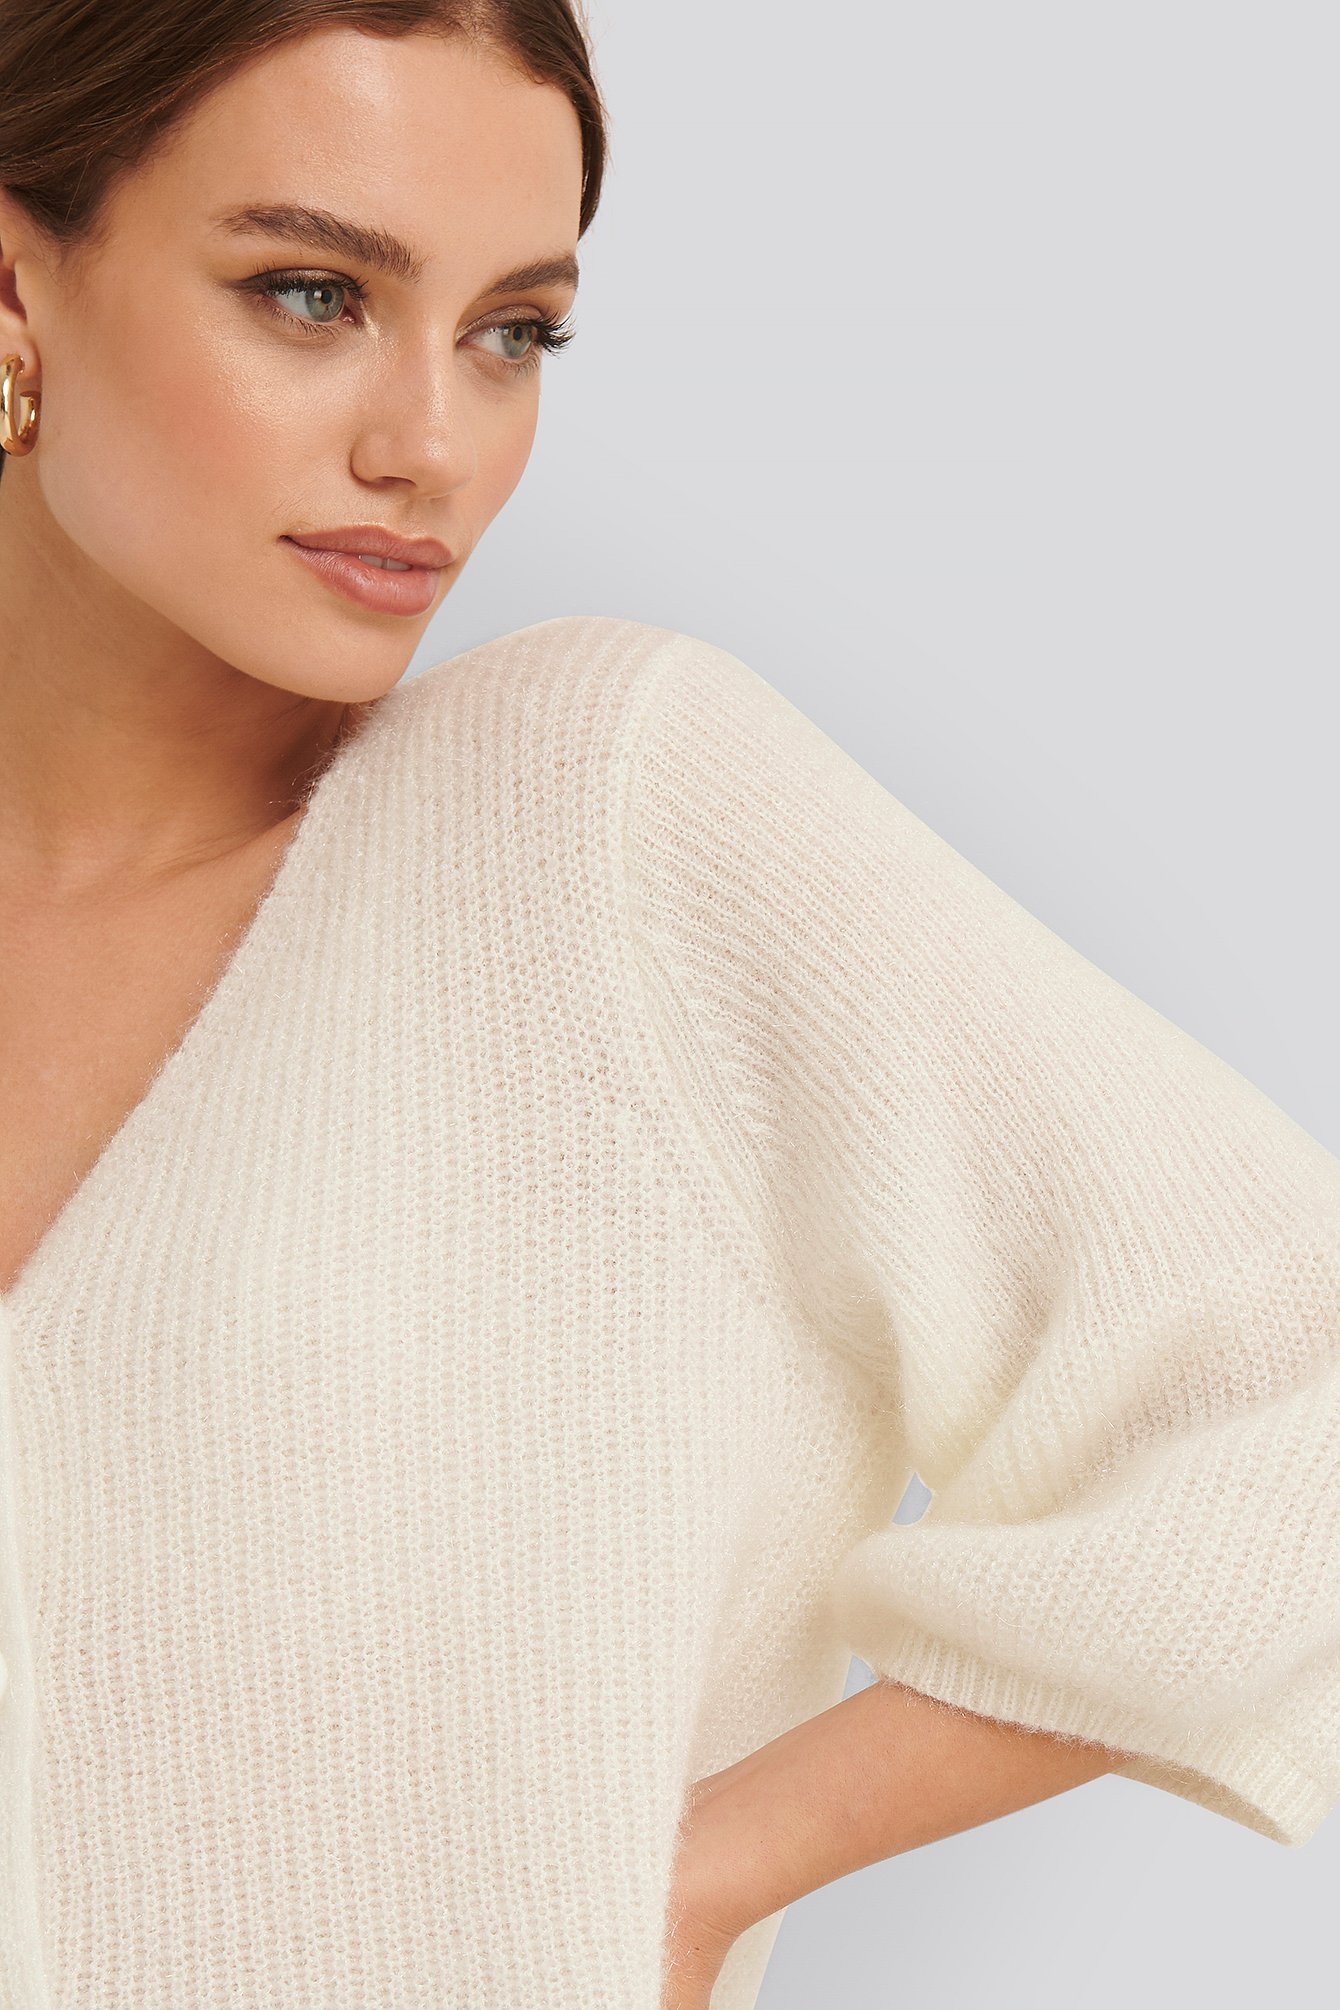 NA-KD Balloon Sleeve Short Knitted Cardigan - White von NA-KD